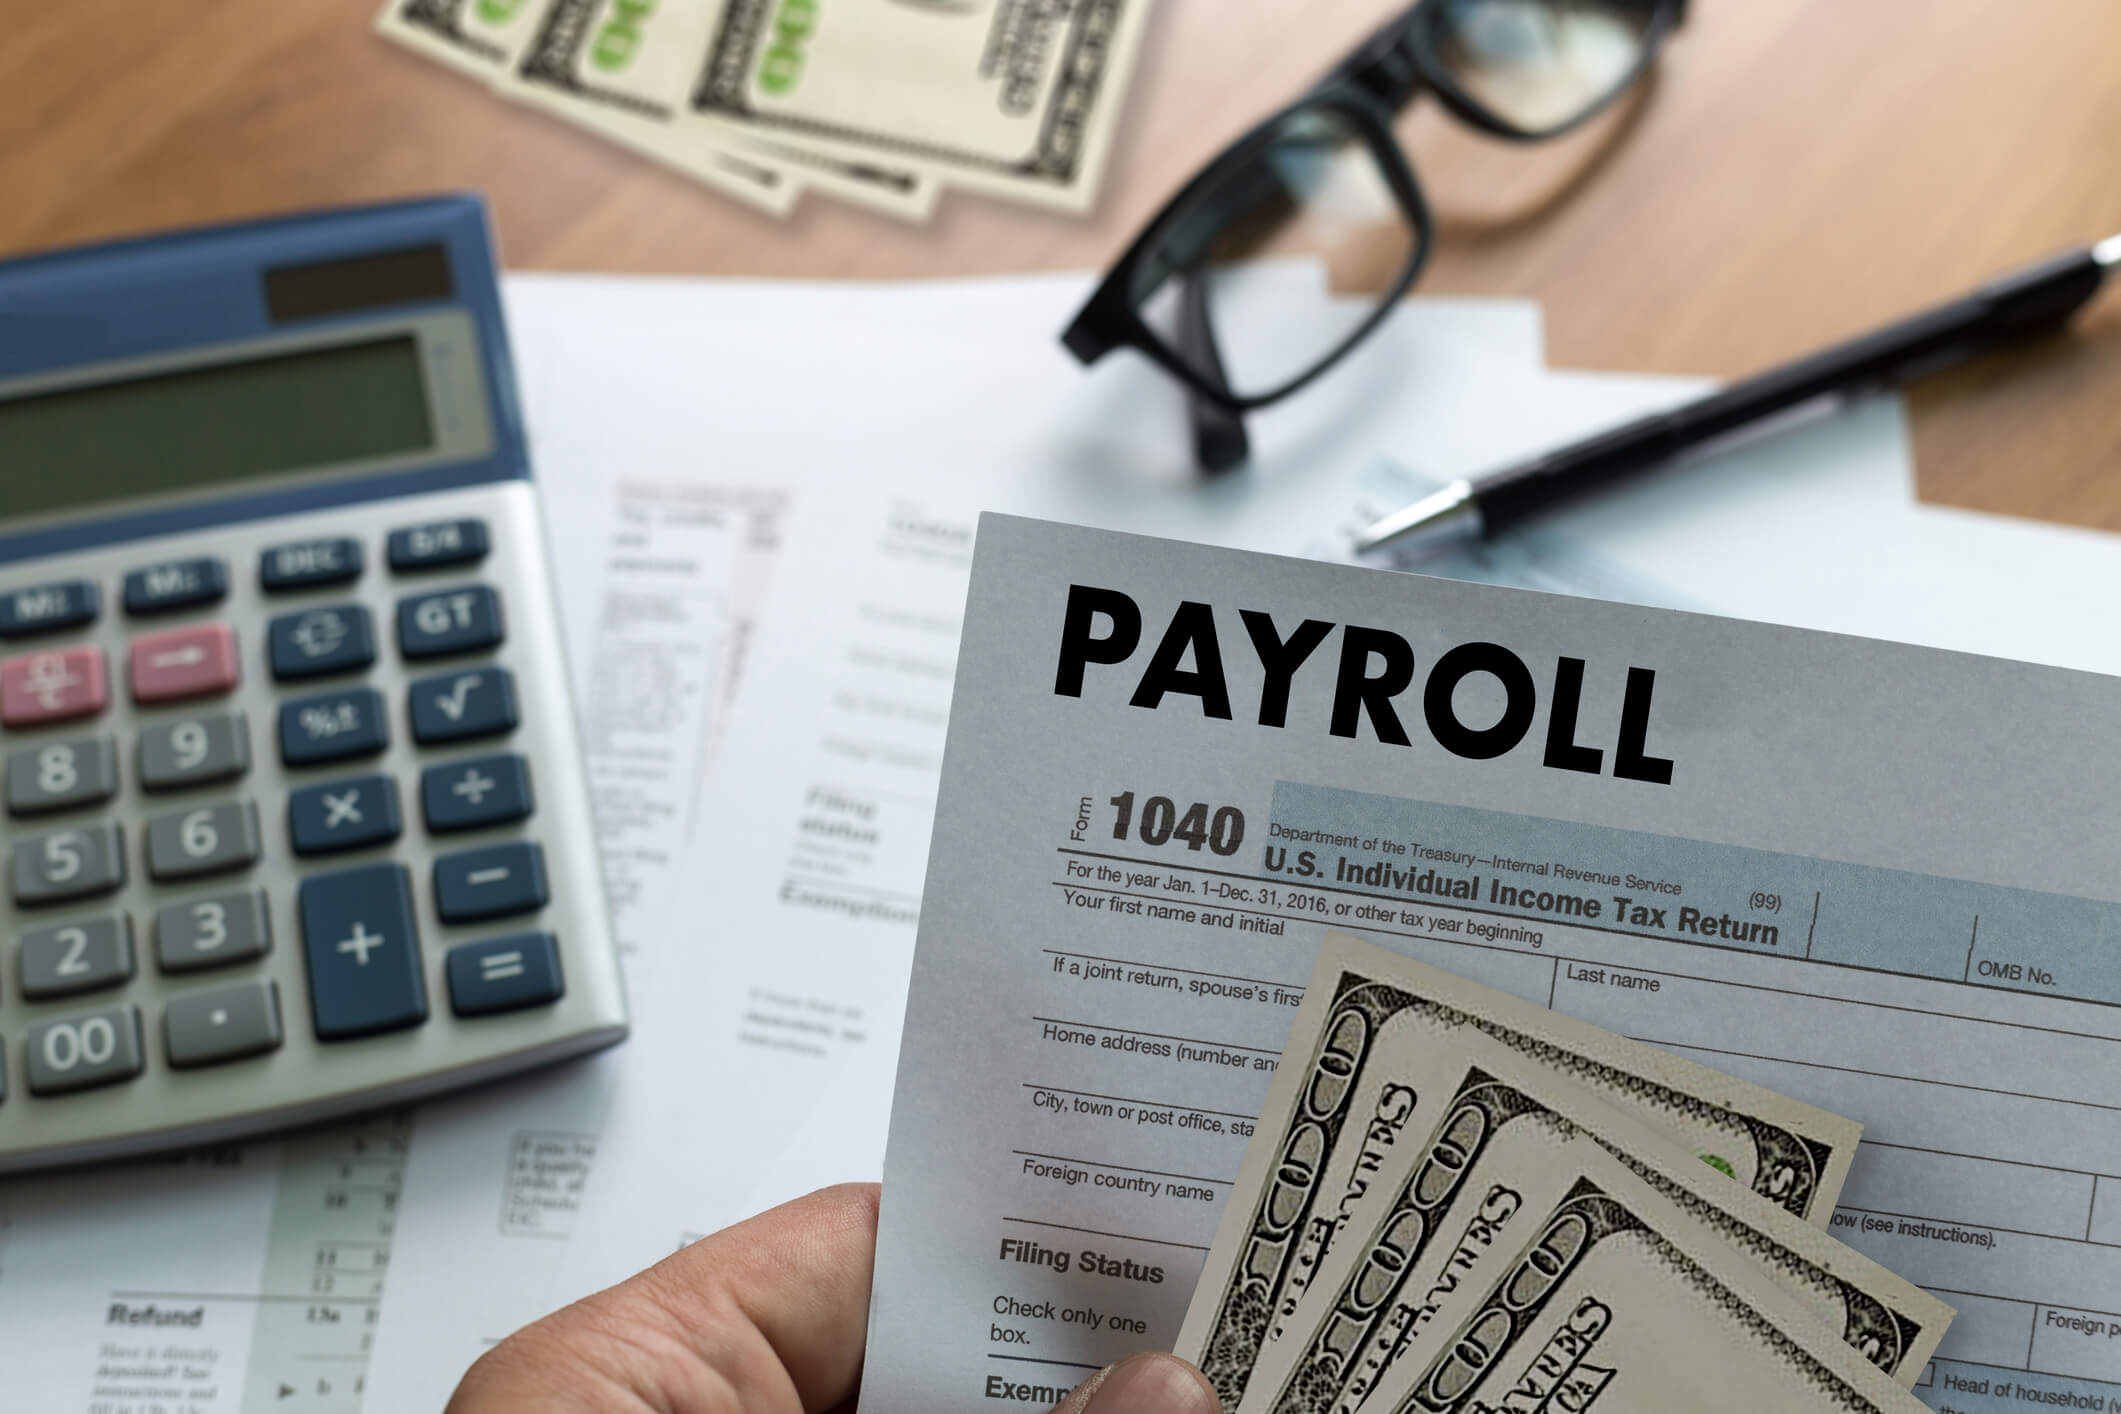 Payroll - Complete Controller